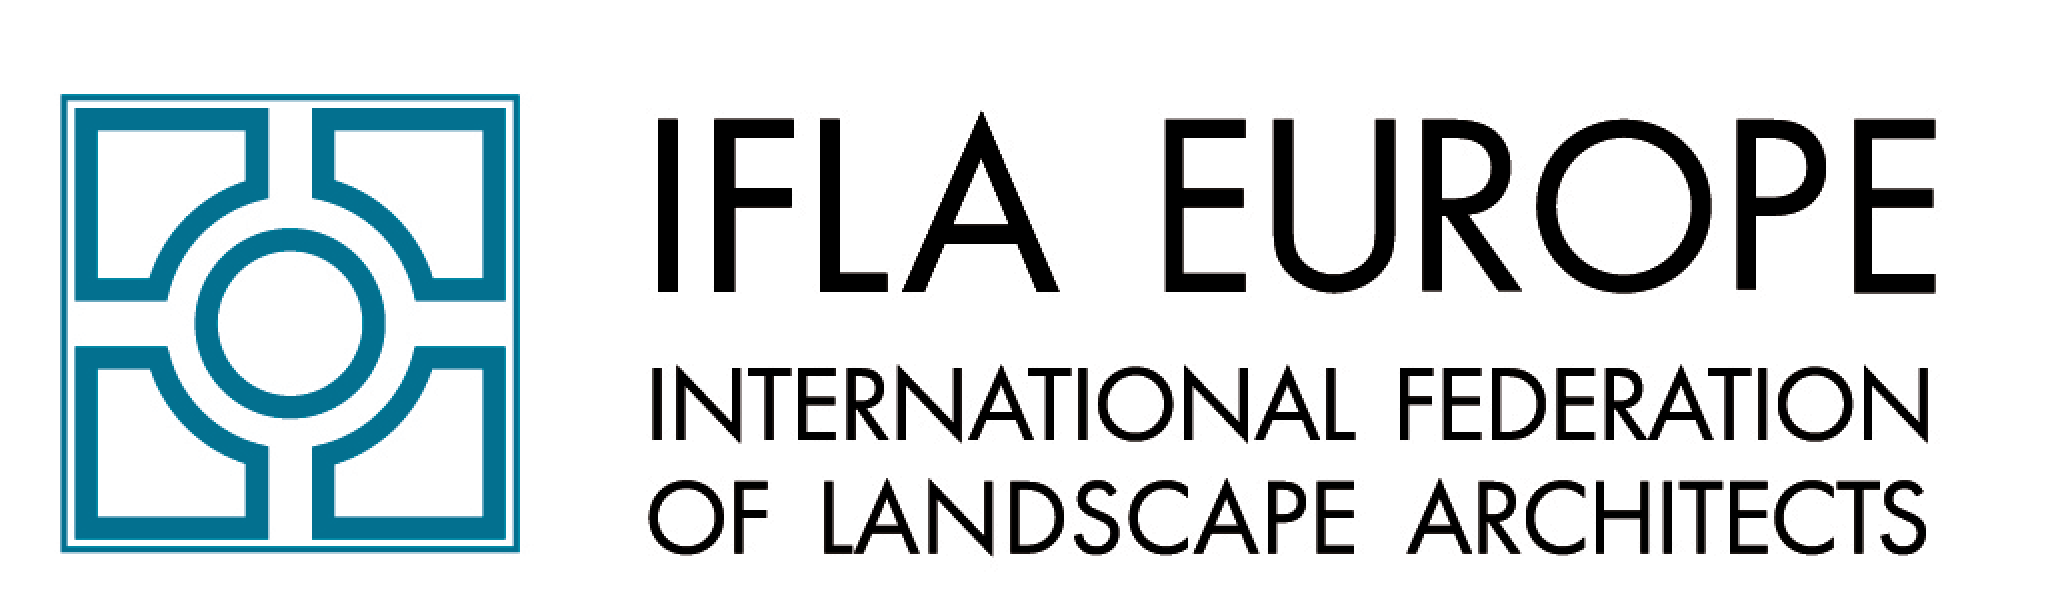 2020 IFLA EUROPE General Assembly to be organised on-line 17 October 2020!